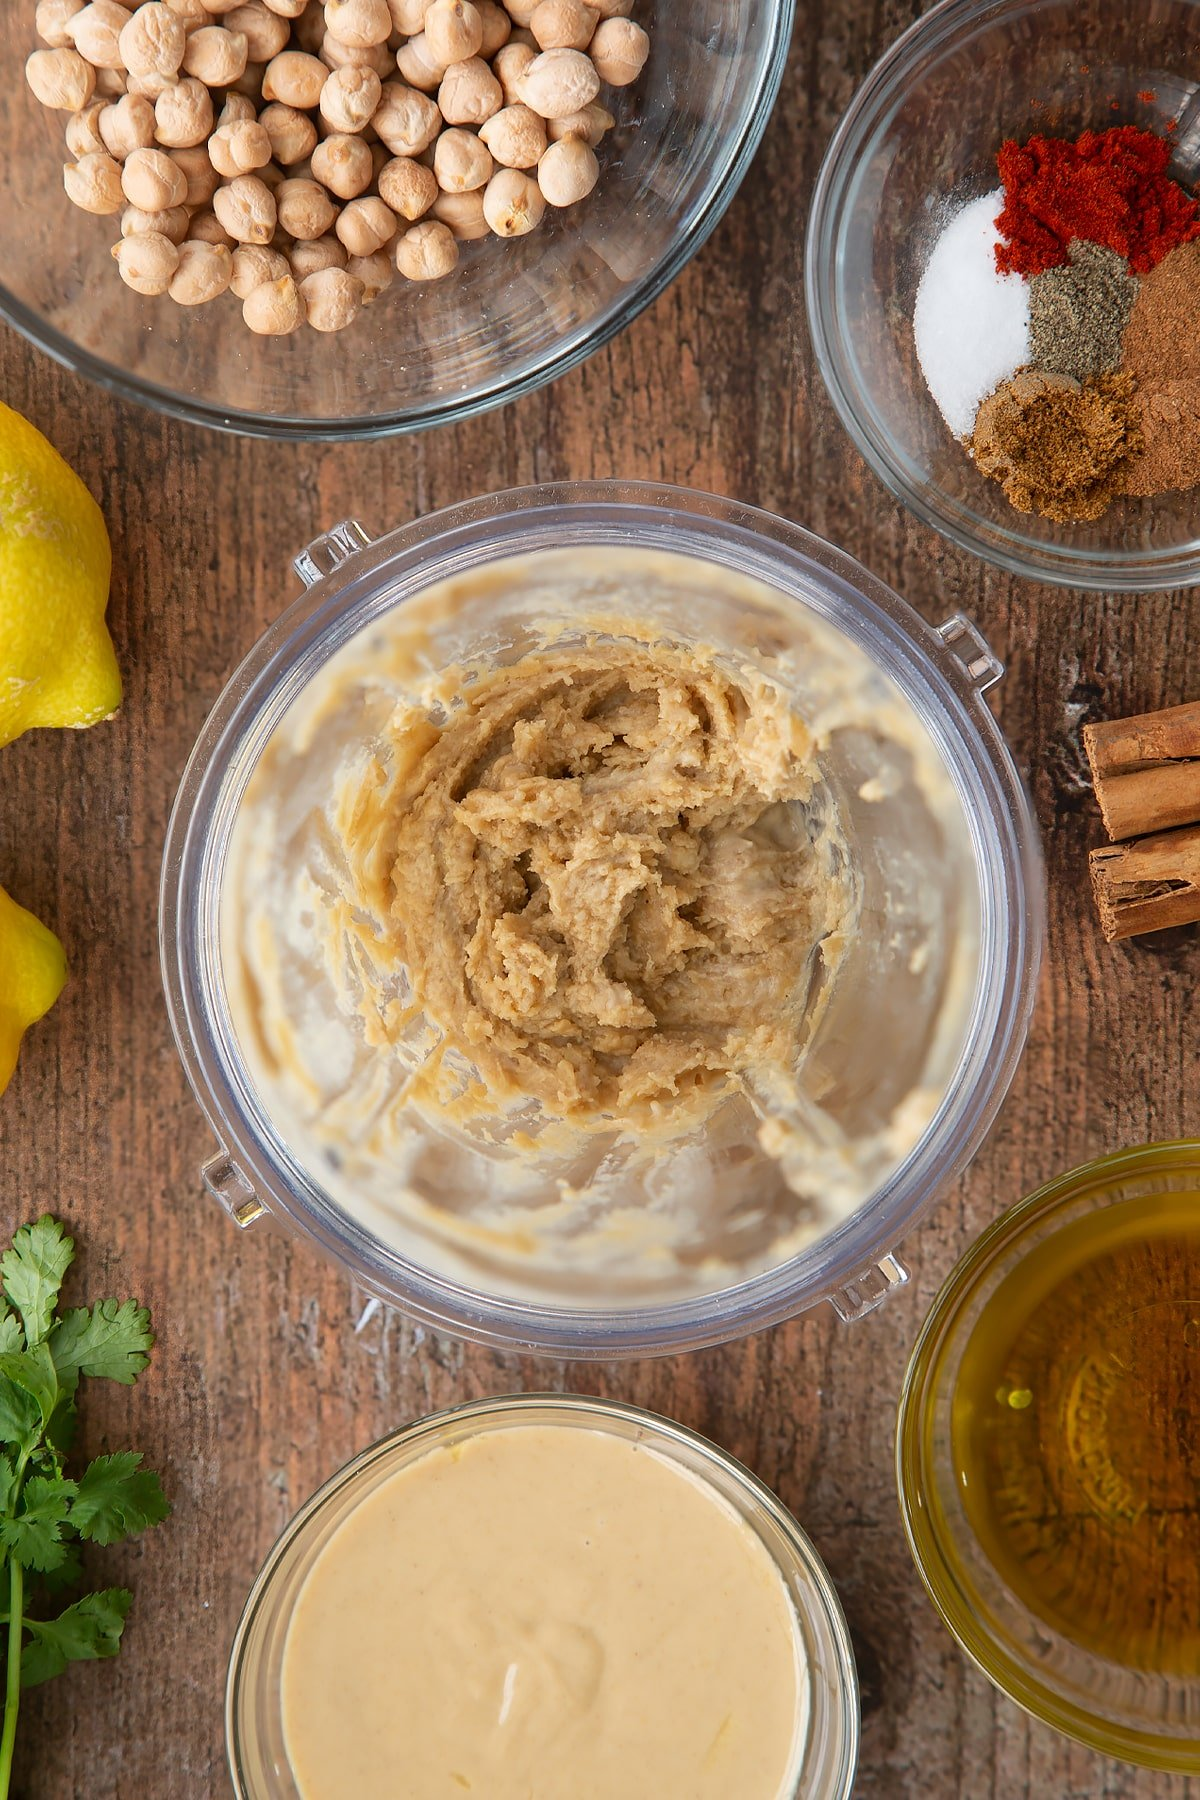 Tahini and lemon juice whipped in a small blender bowl. Ingredients to make cinnamon hummus surround the bowl.